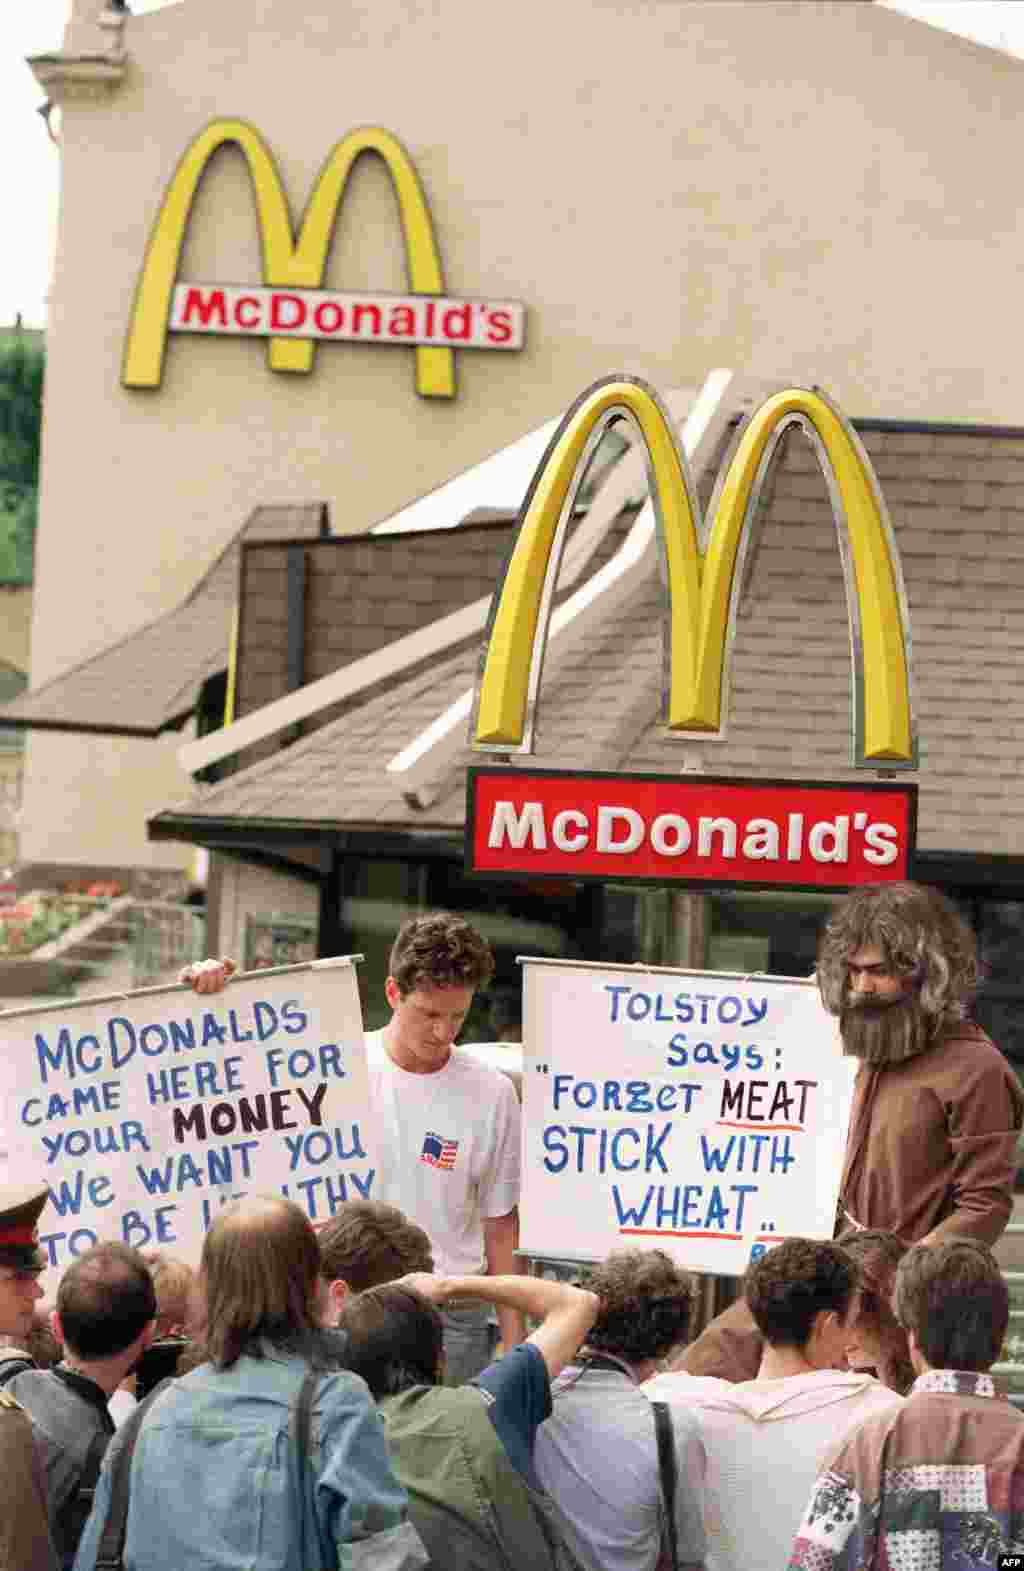 It wasn't all plain sailing for McDonald's in its early days in Russia. Here, Russian animal rights activists protest outside an outlet in 1992, claiming that meat is unhealthy for their compatriots.